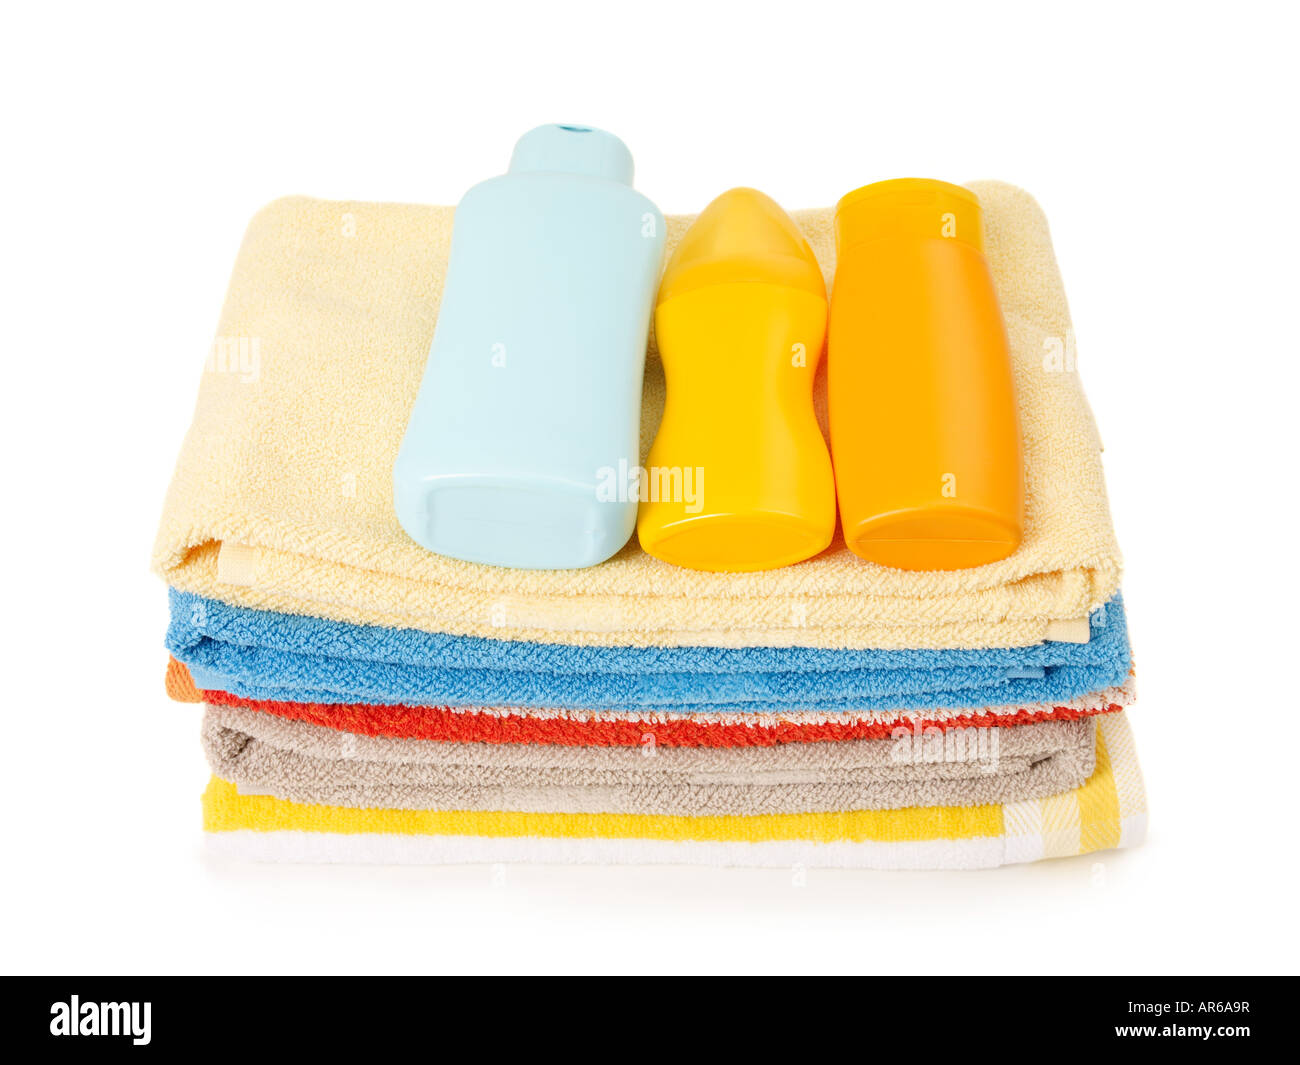 Suntan lotion and beach towels - Stock Image